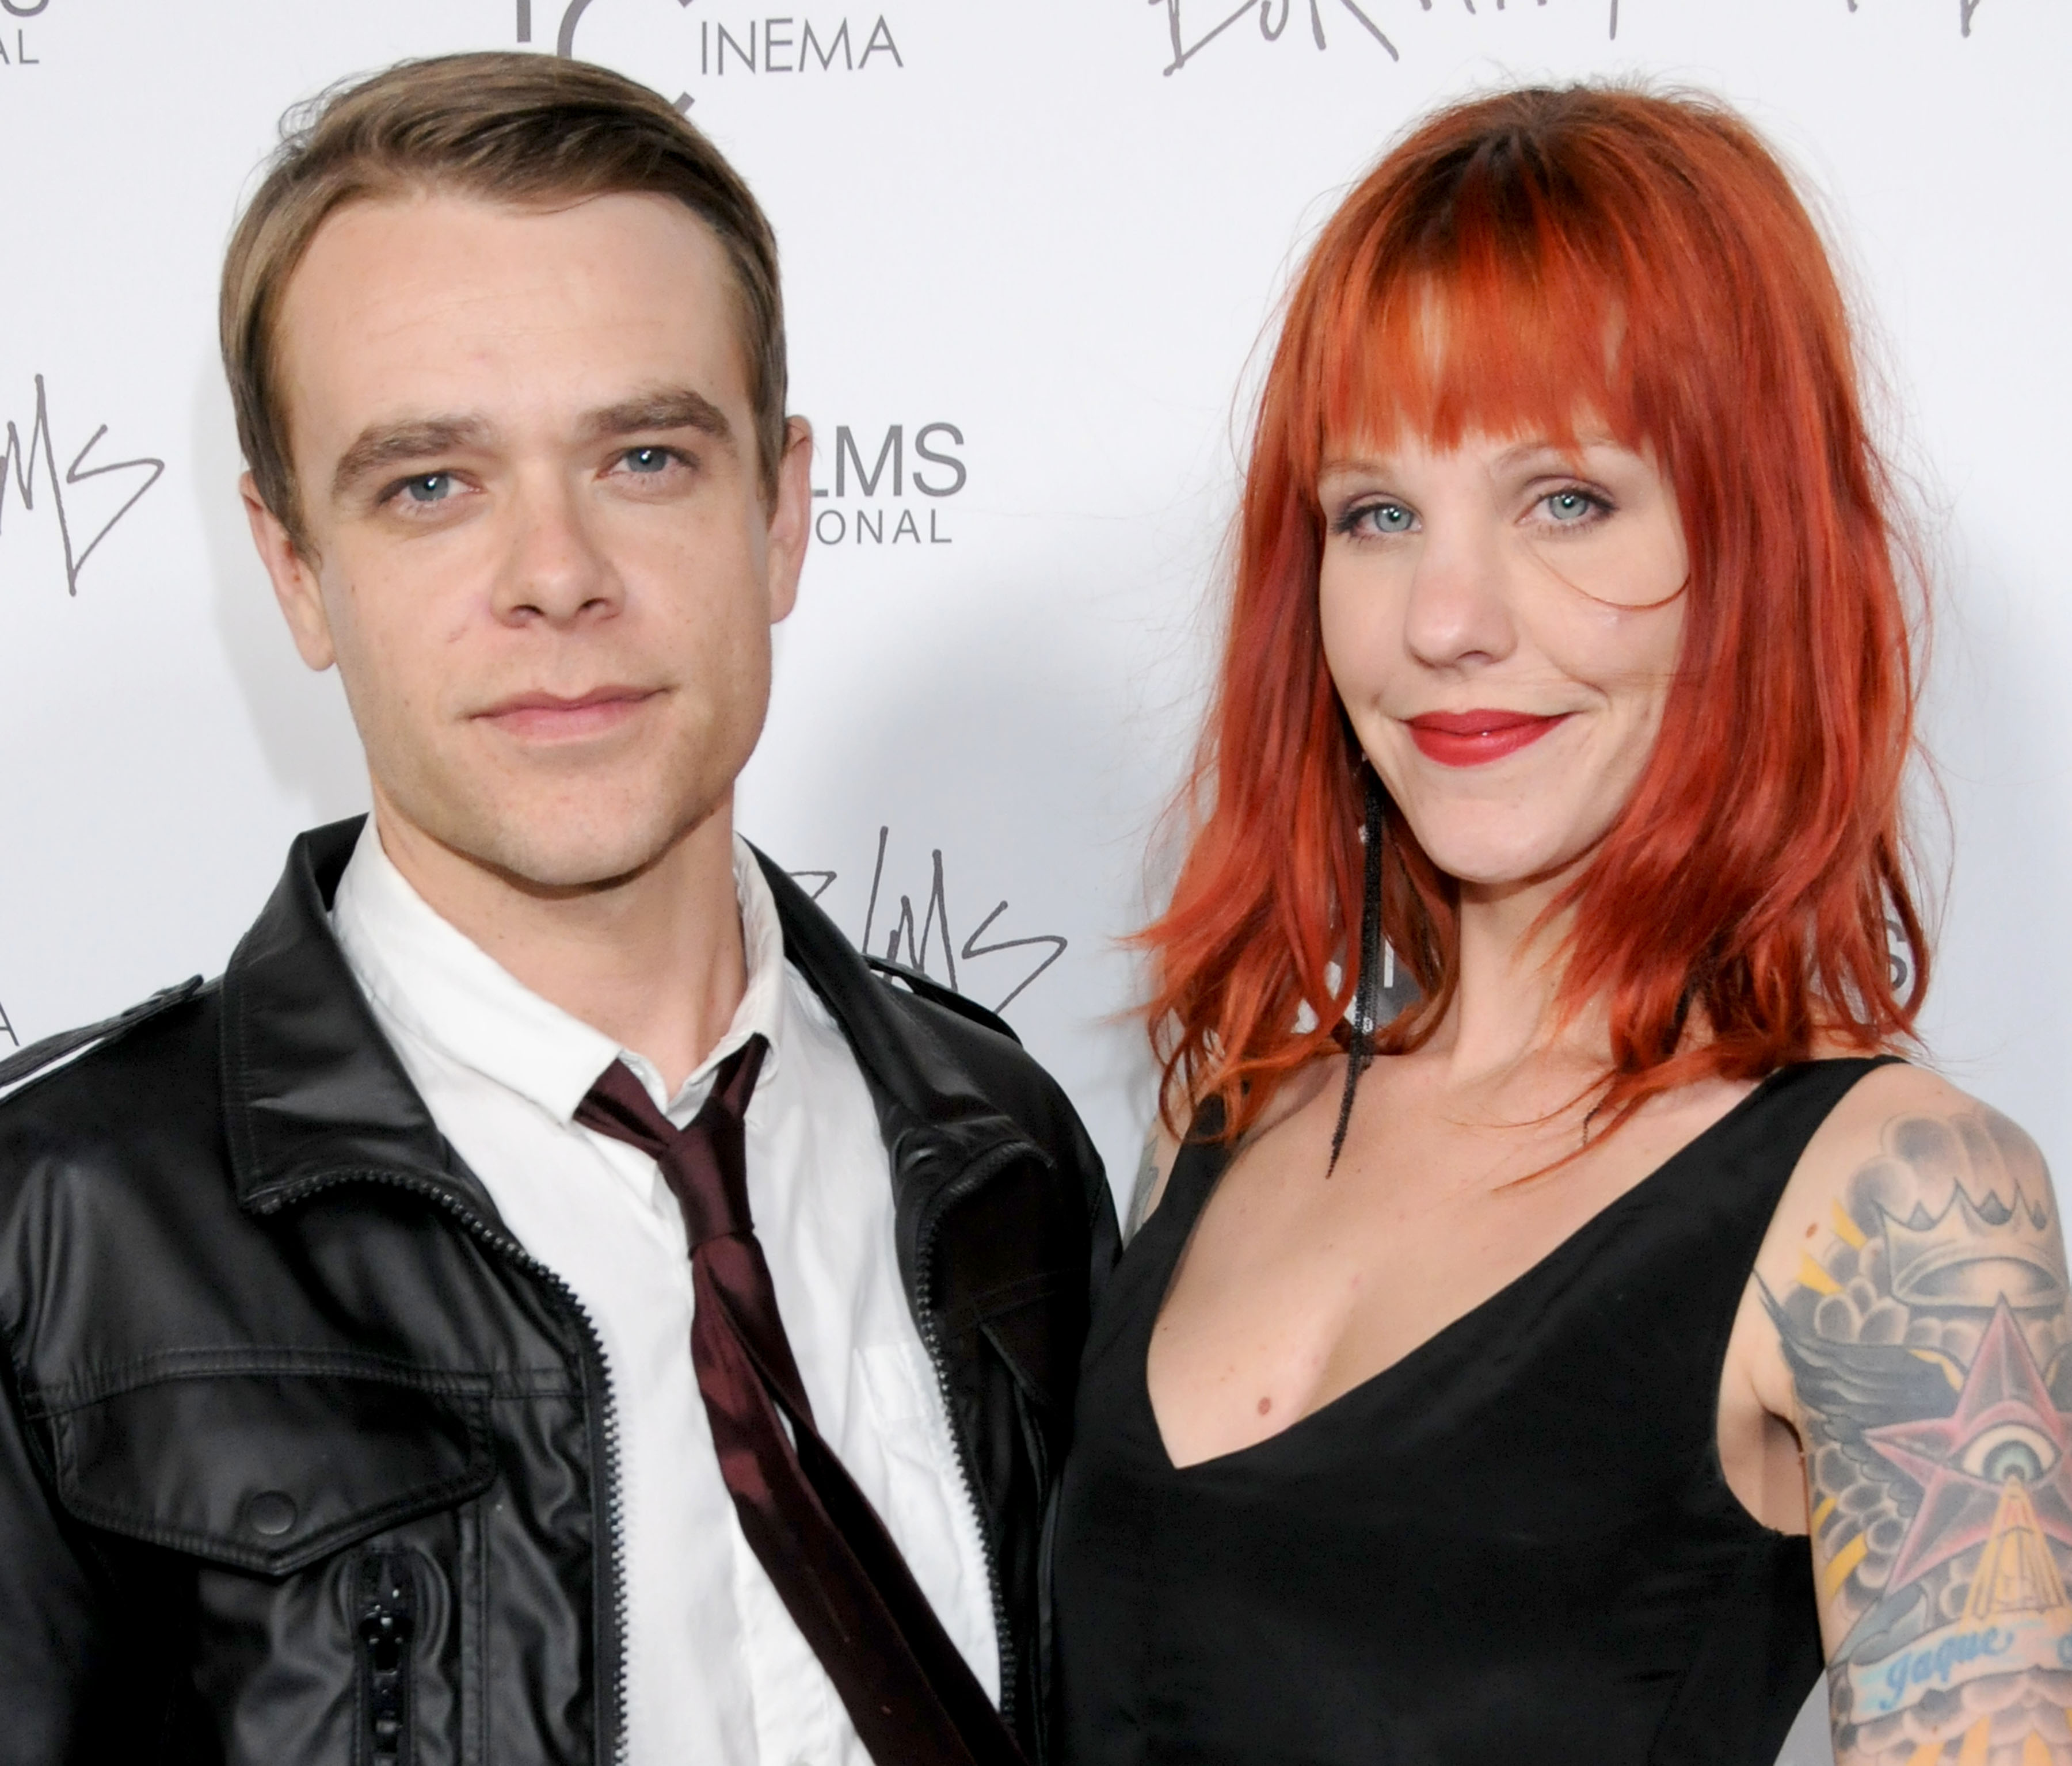 Missing Actor Nick Stahl Checks Into Rehab Elated